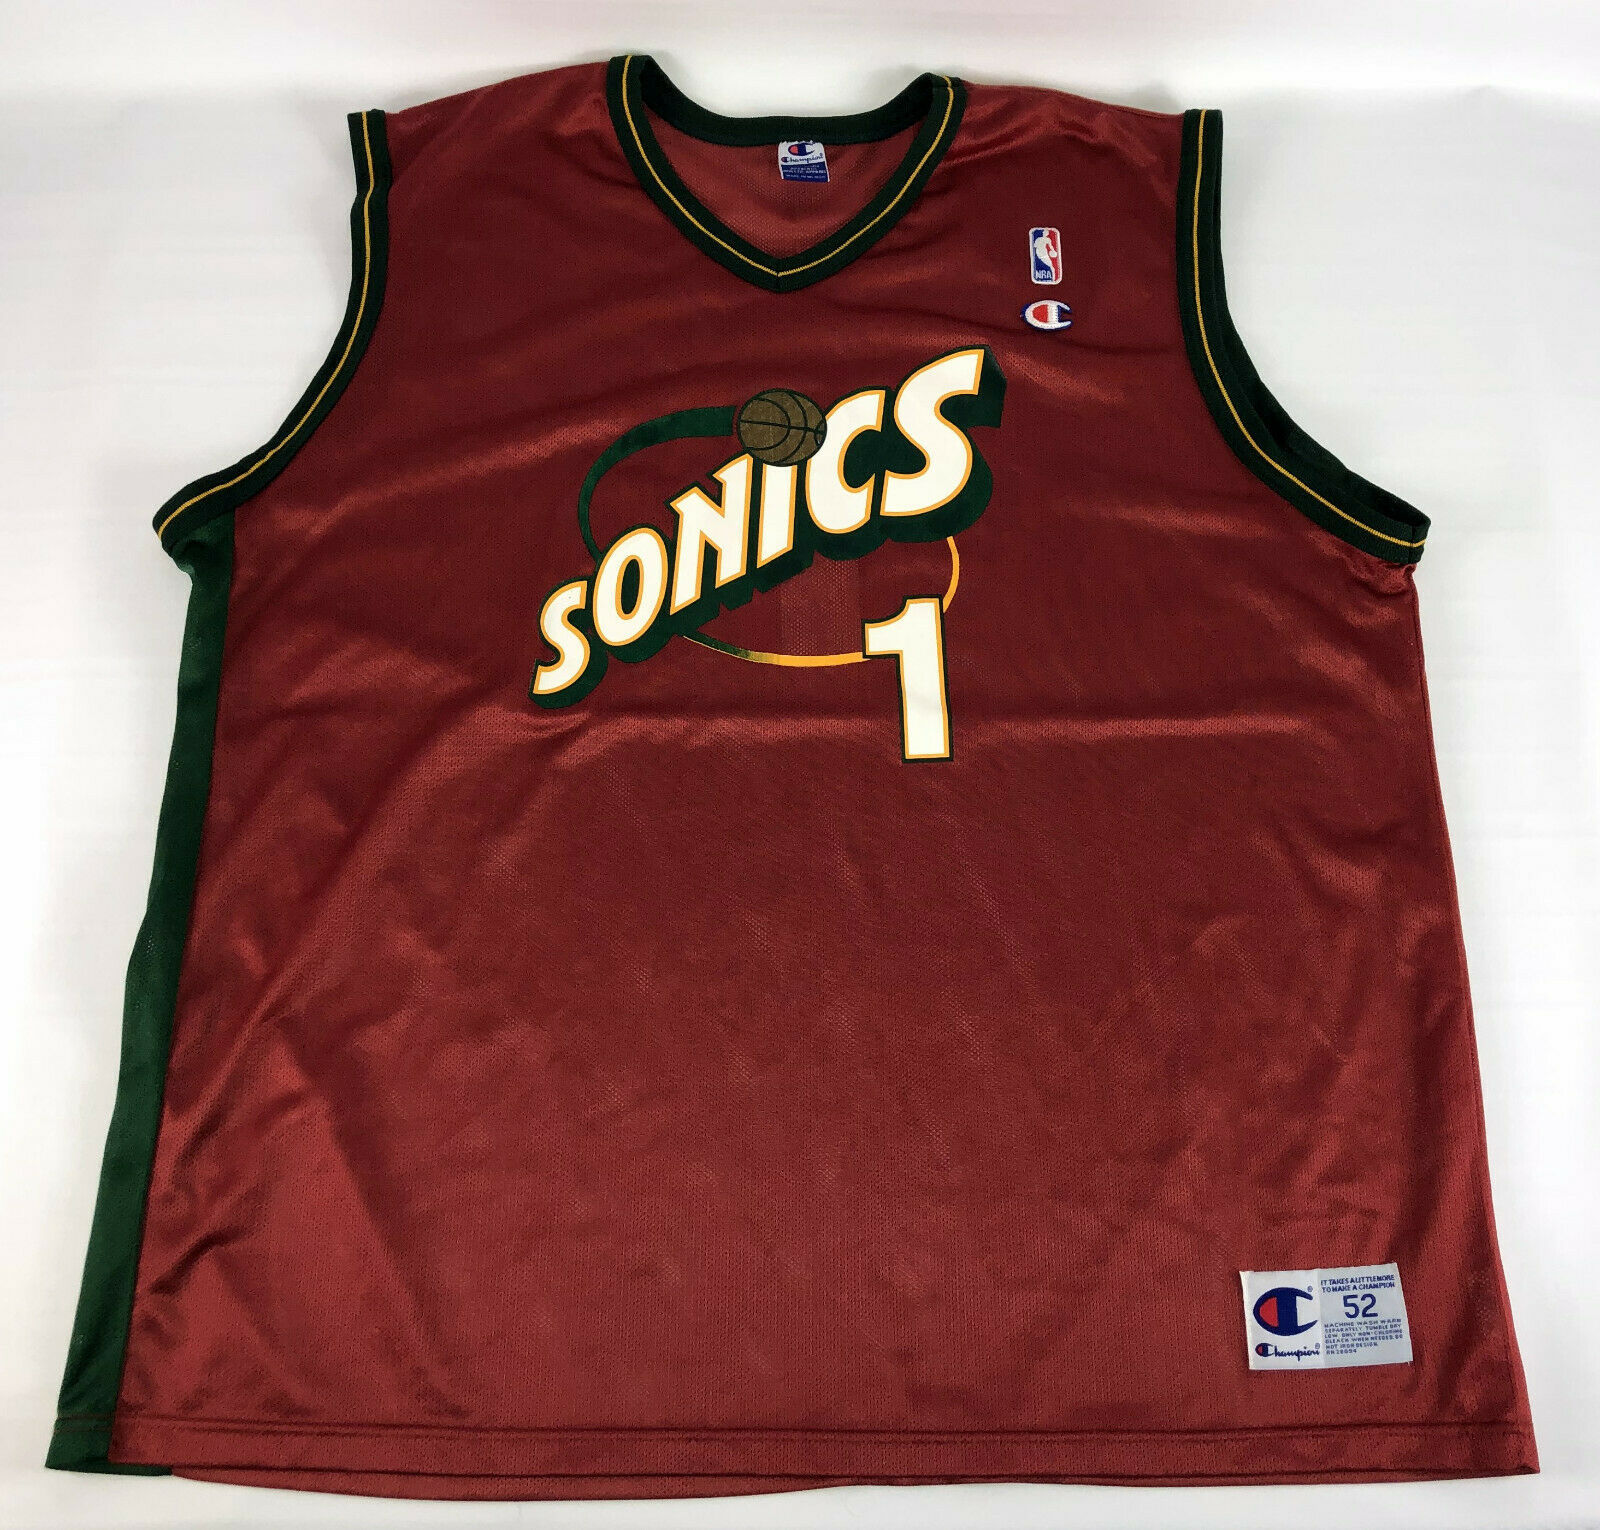 Primary image for Seattle Sonics #1 Jersey Champion Red 1990's Size 52